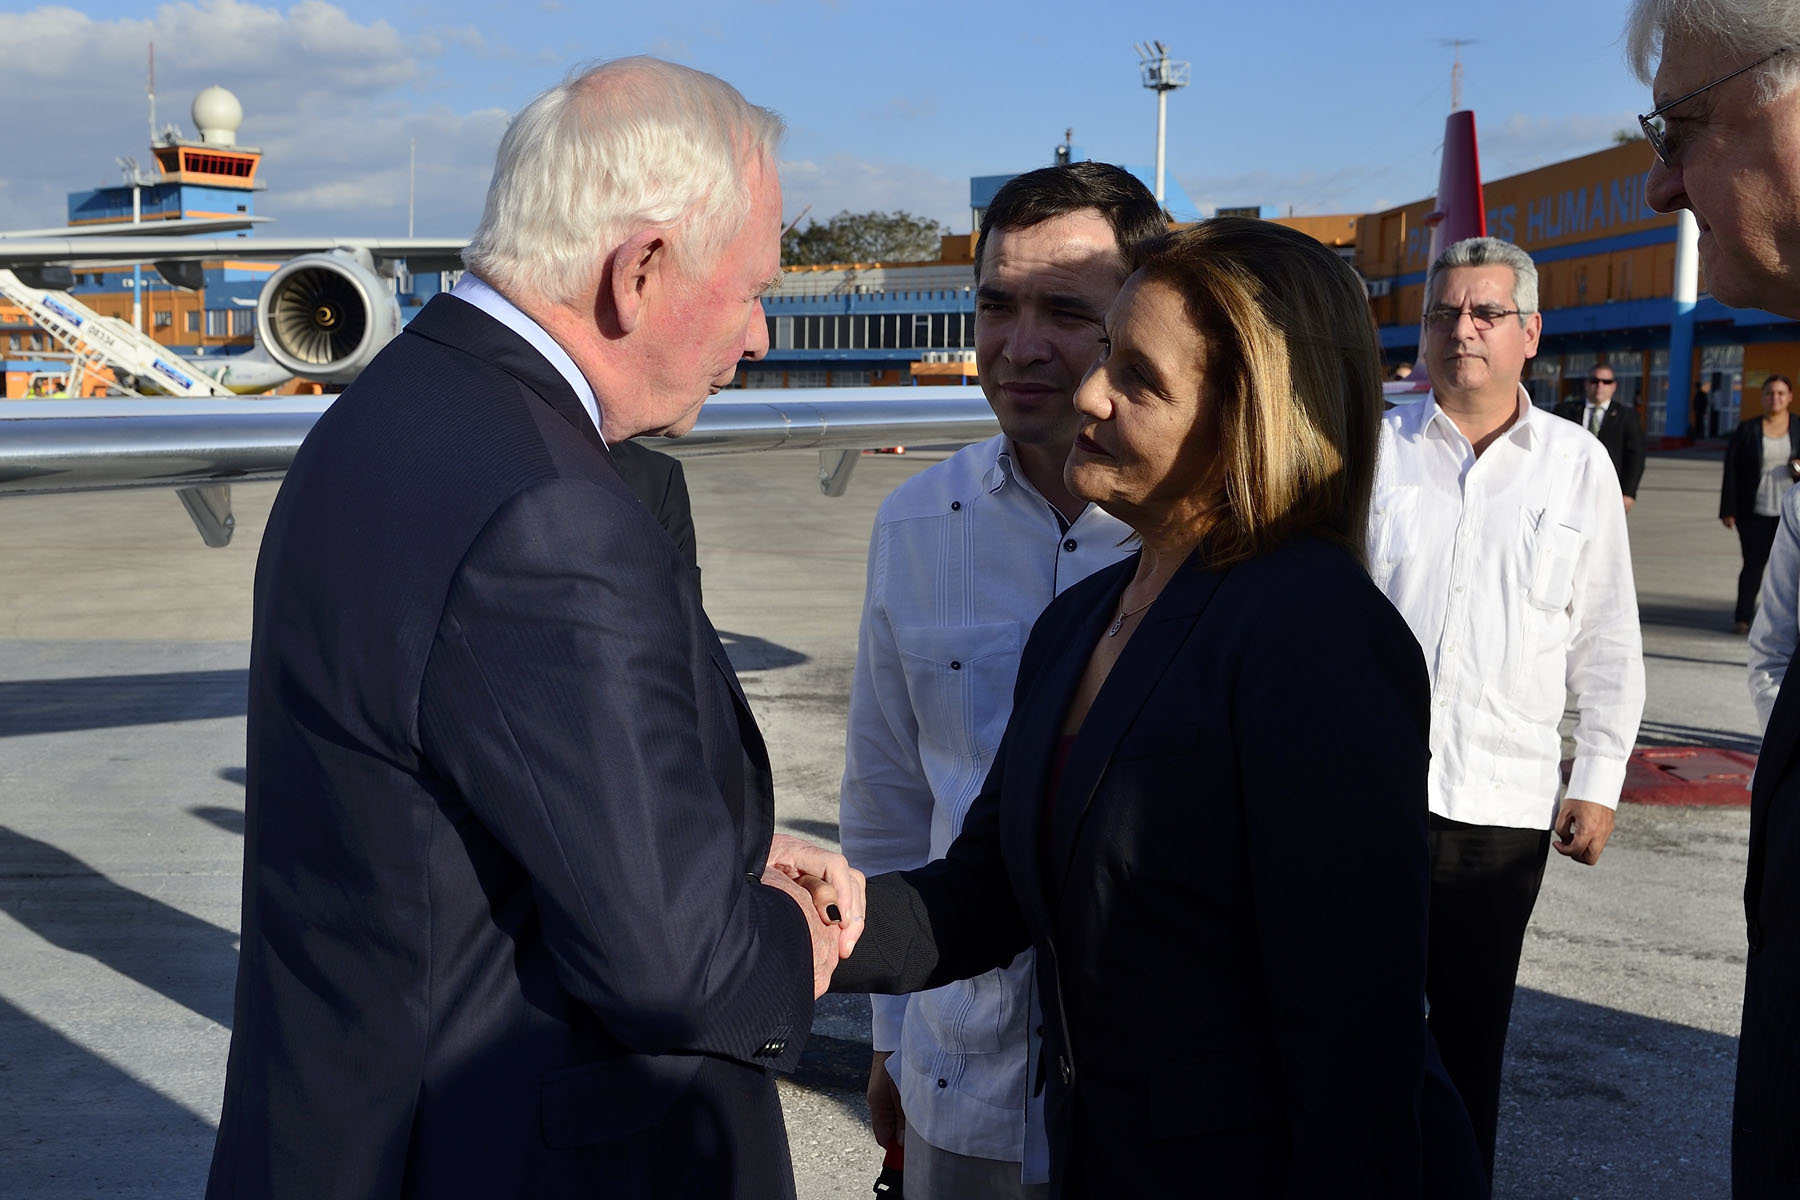 Upon his arrival in Havana, His Excellency was greeted by Elba Rosa Perez Montoya, Minister of Science, Technology and Environment.